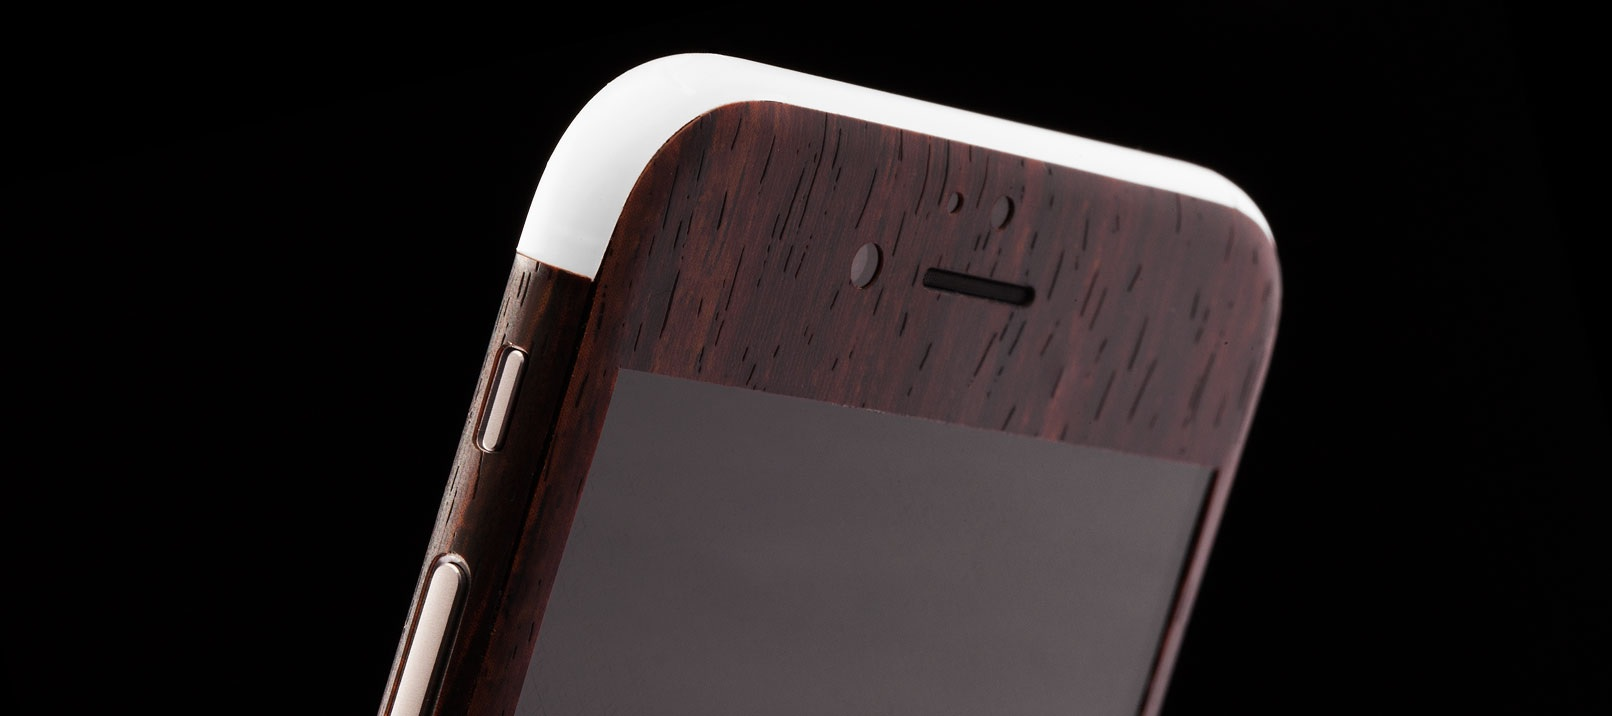 Stylish Phone Skins for the iPhone 6 are so hot right now